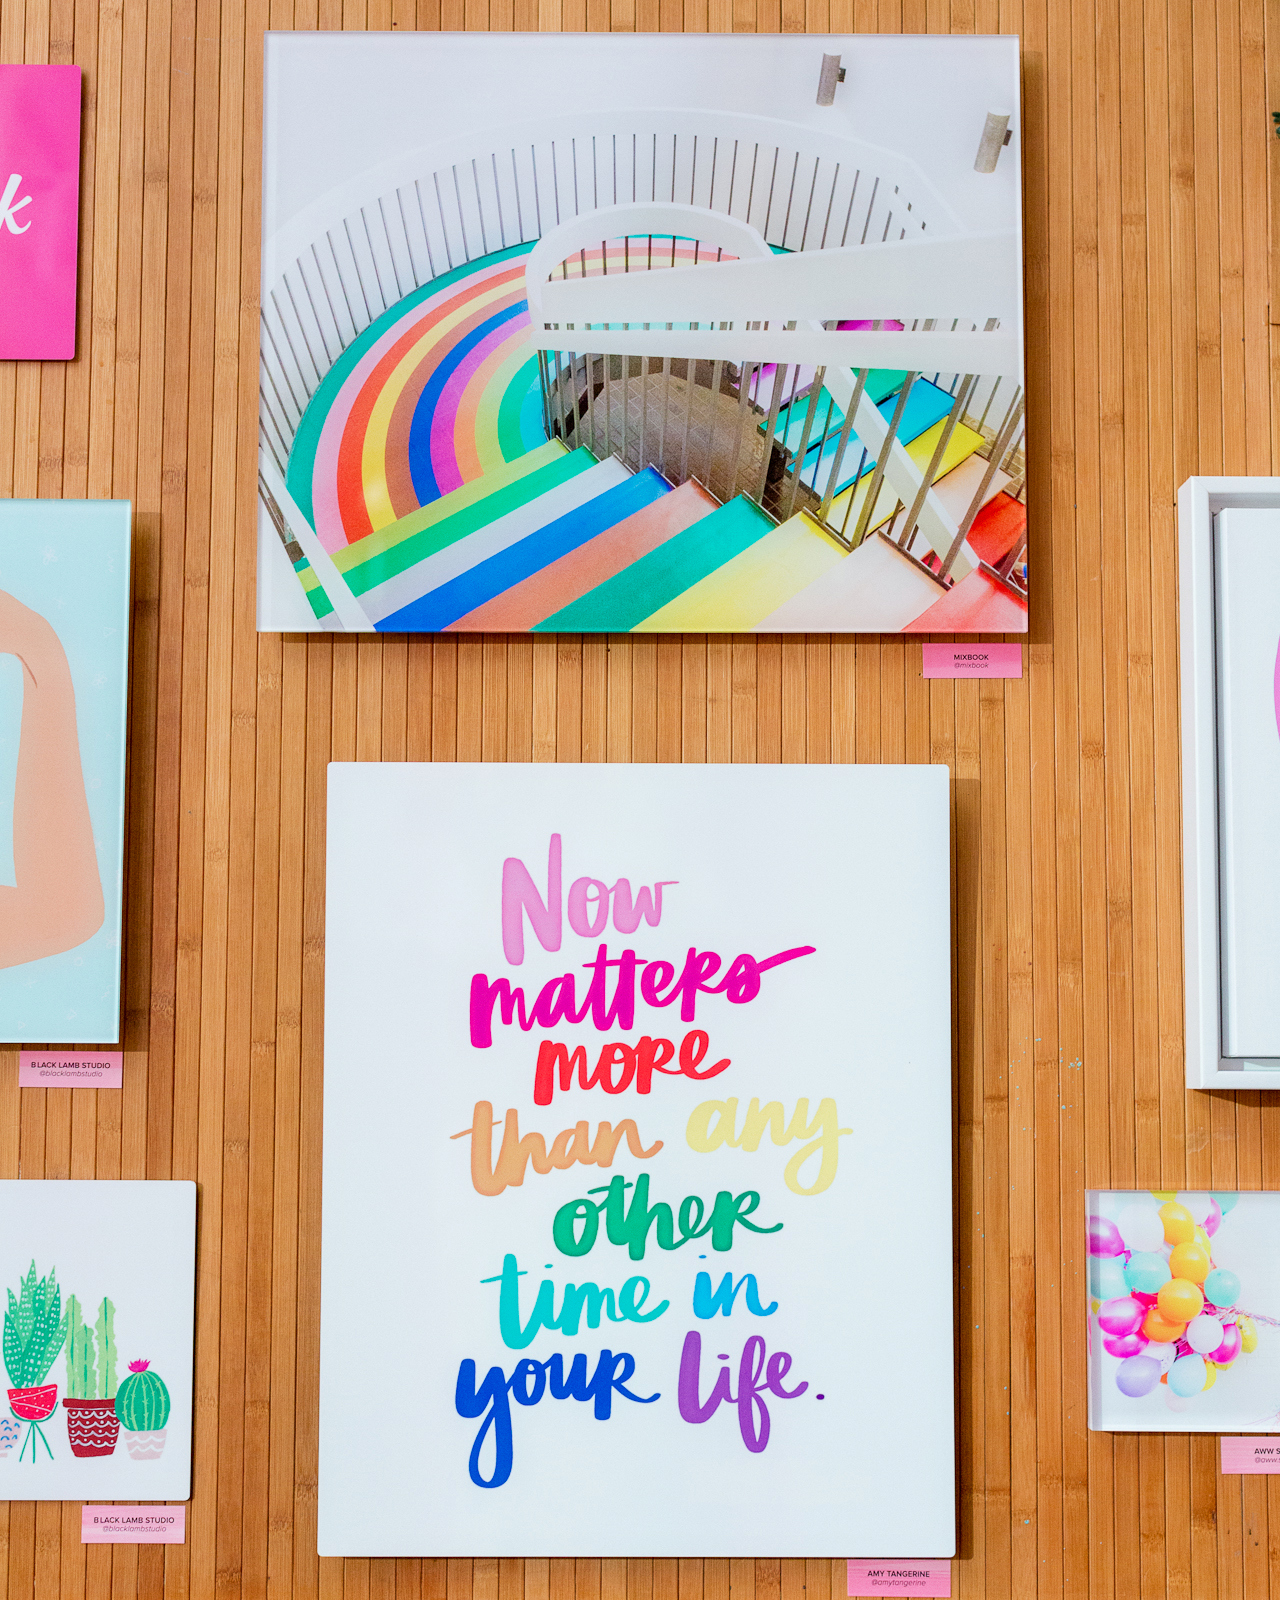 Paper Party 2018 / Colorful Modern Abstract Art Party Inspiration